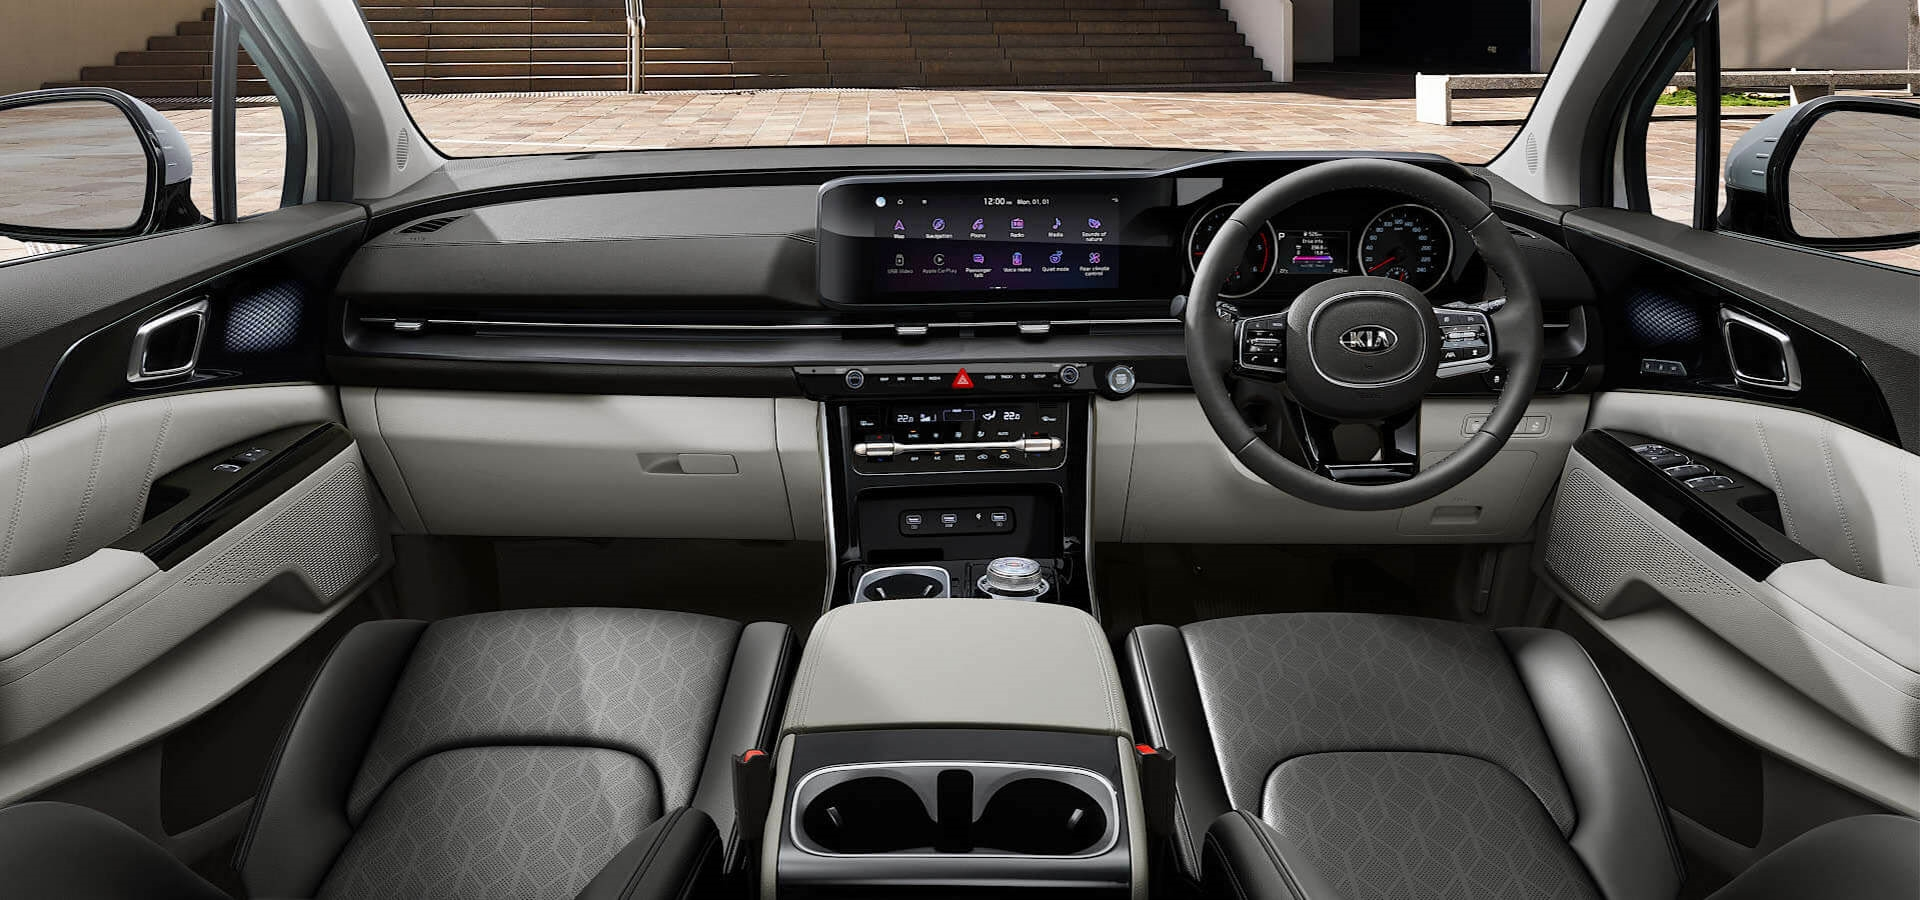 Kia Carnival Interior Technology